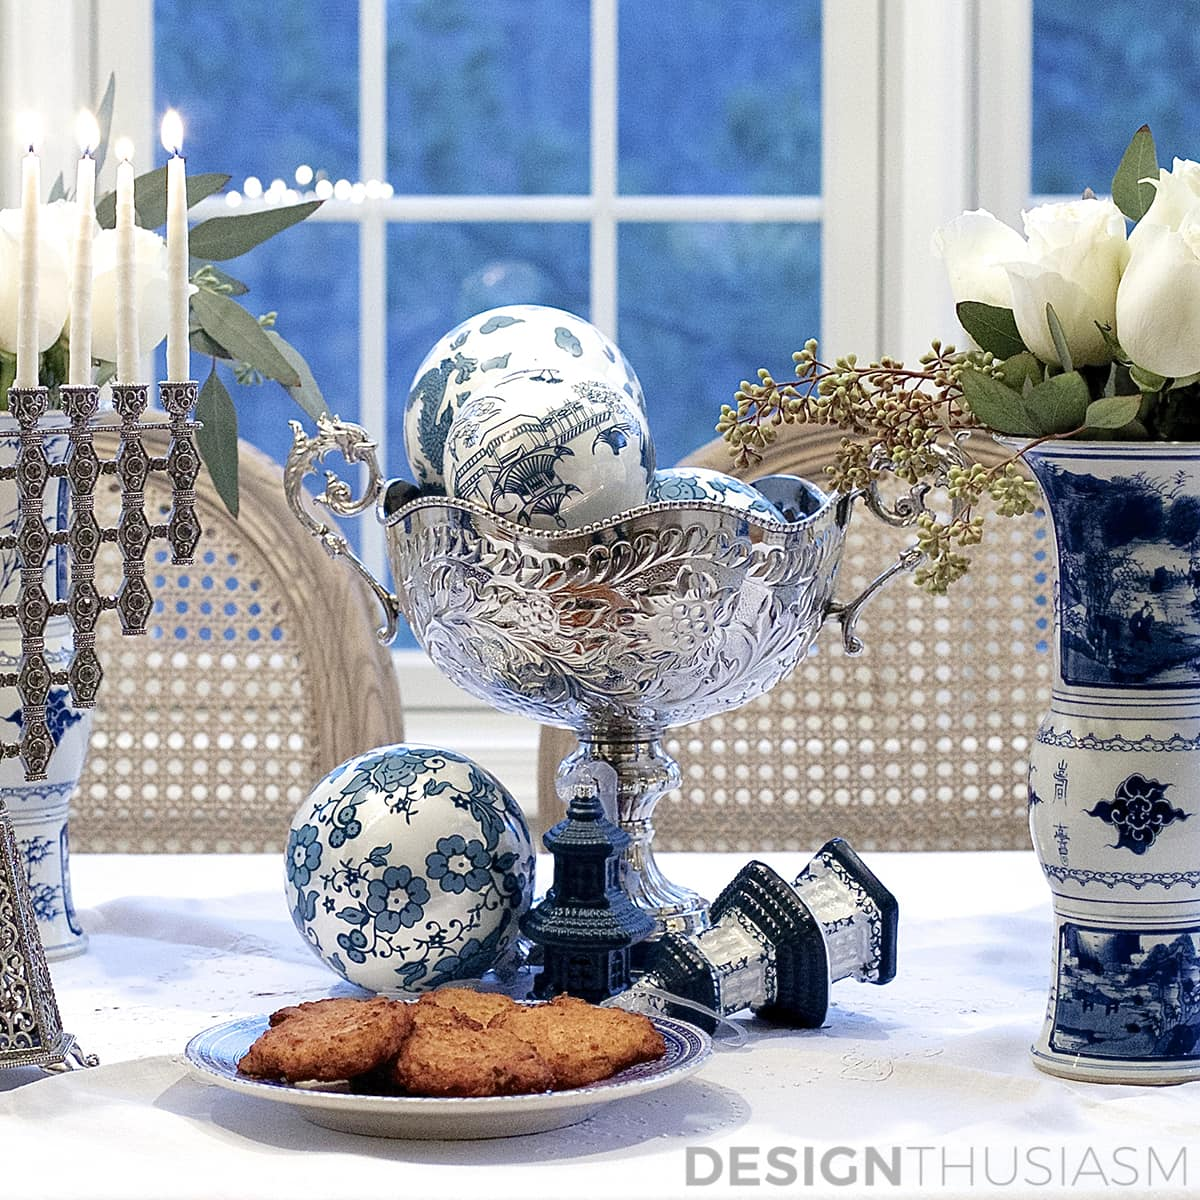 Using Blue and White Chinoiserie for Hanukkah Decorations | Designthusiasm.com